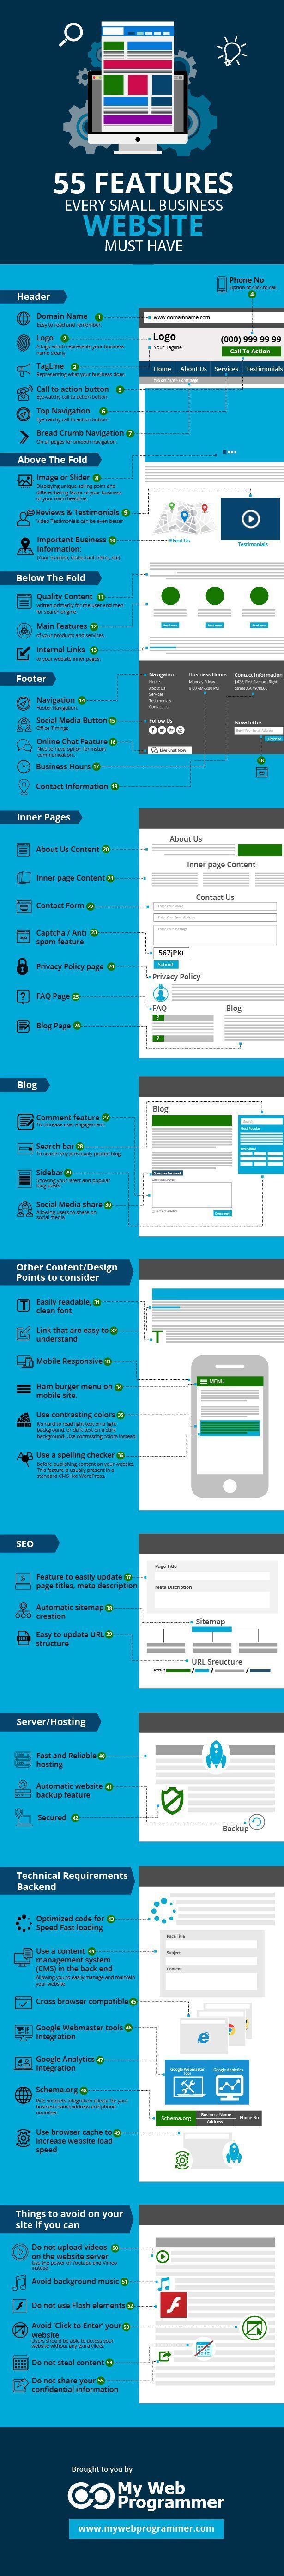 Website Features Checklist 55 Steps To Web Design Success Infographic Small Business Website Web Design Tips Business Website